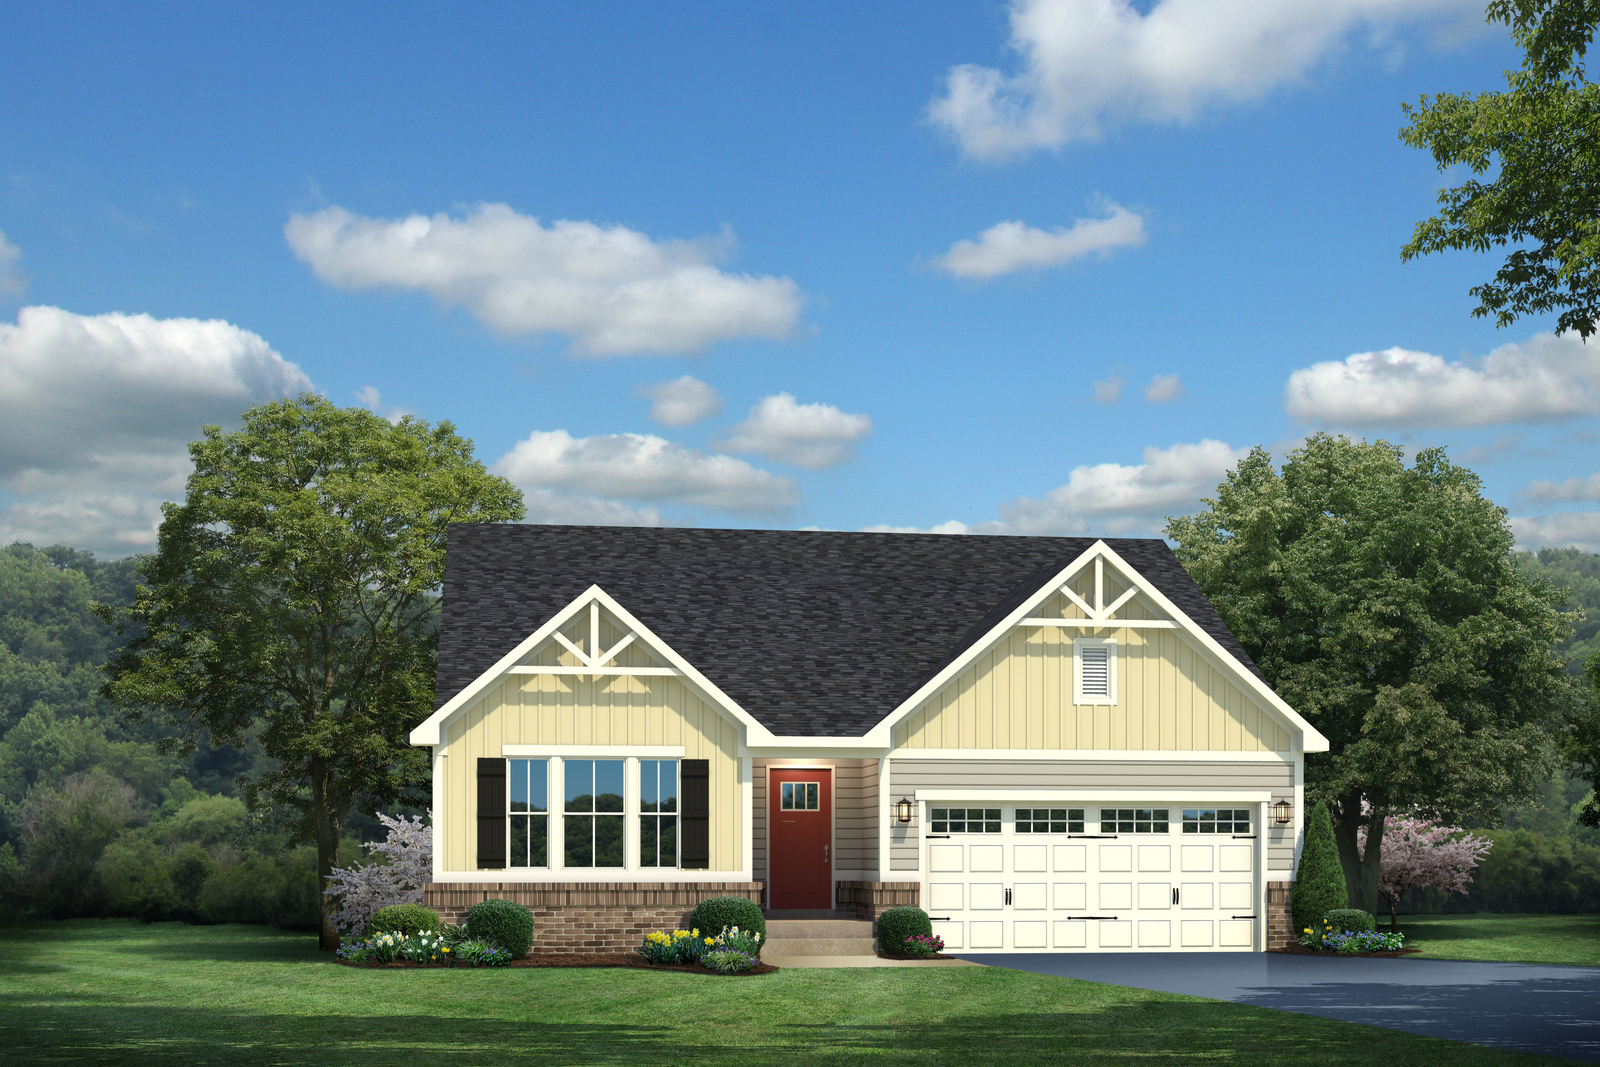 New pisa torre home model for sale heartland homes for Heartland homes pittsburgh floor plans